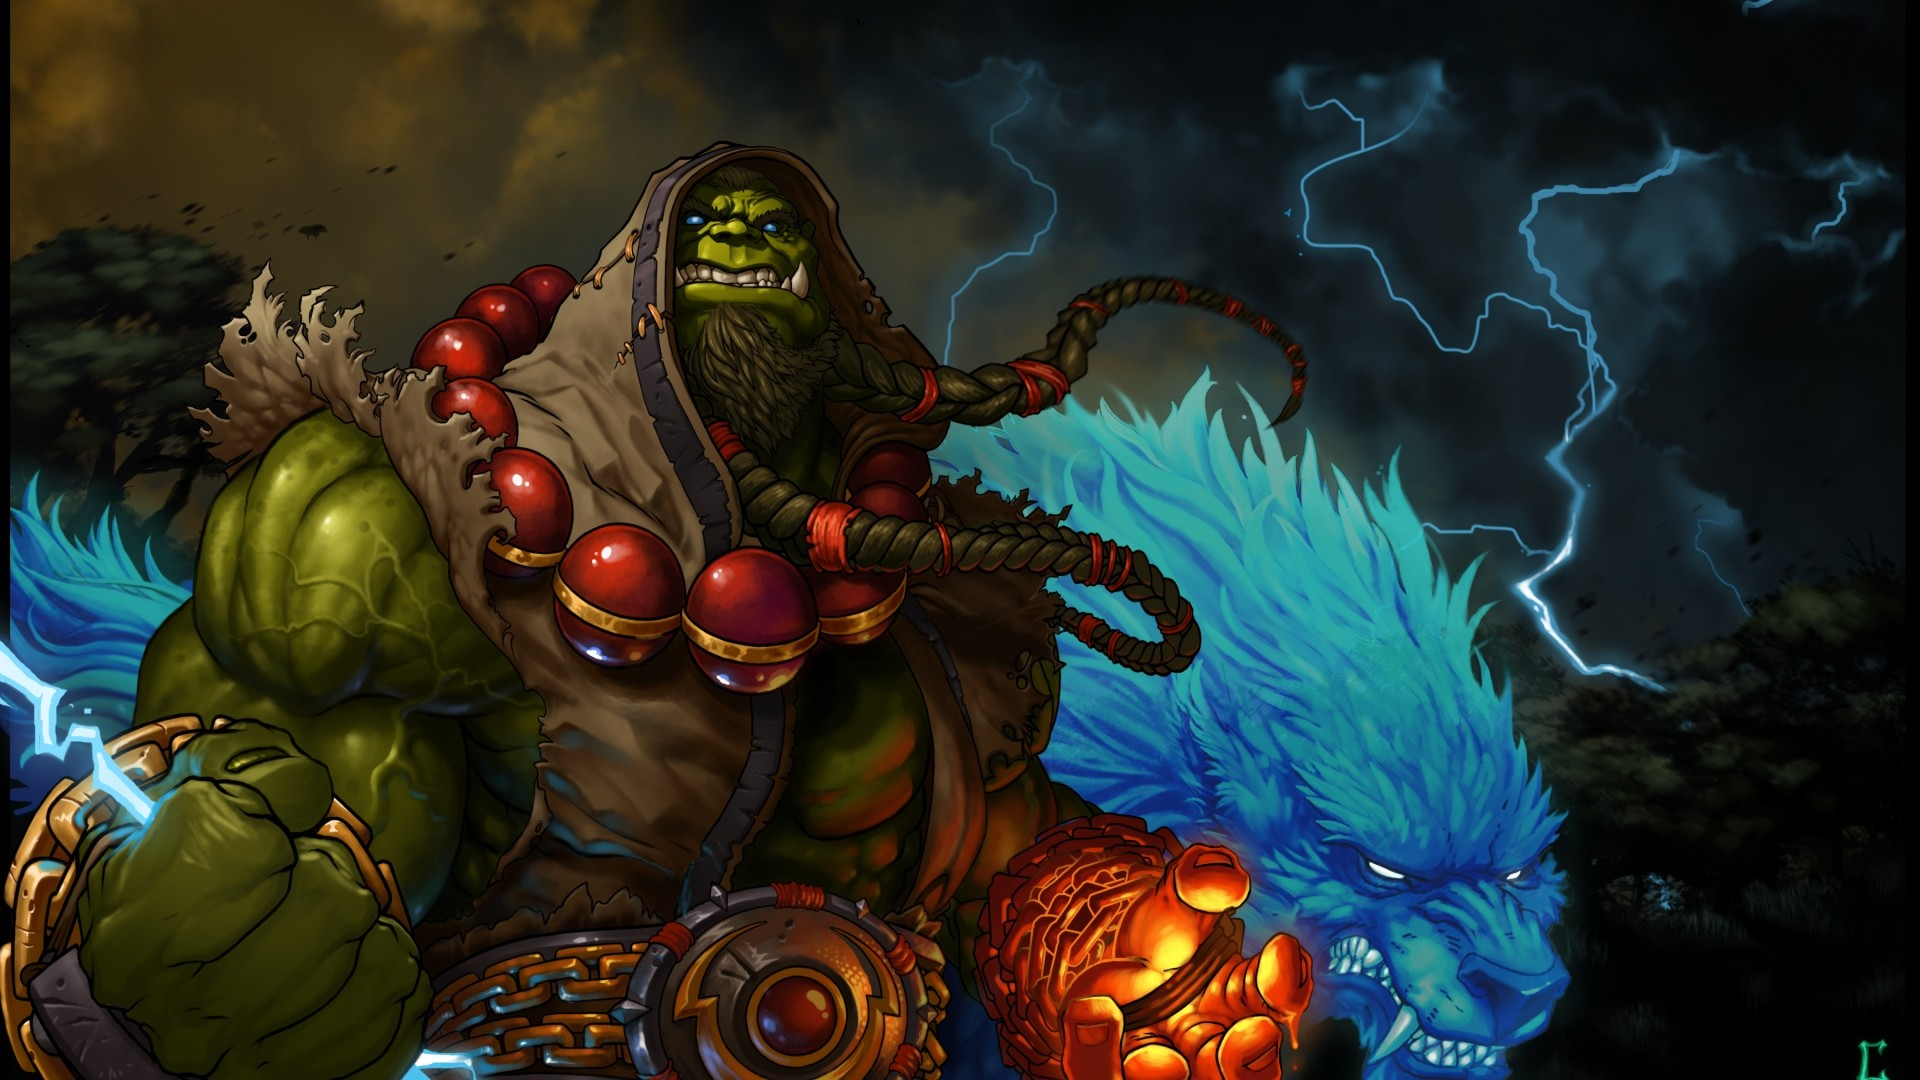 Preview wallpaper world of warcraft, shaman, thrall, blizzard, lightning,  orc 1920×1080